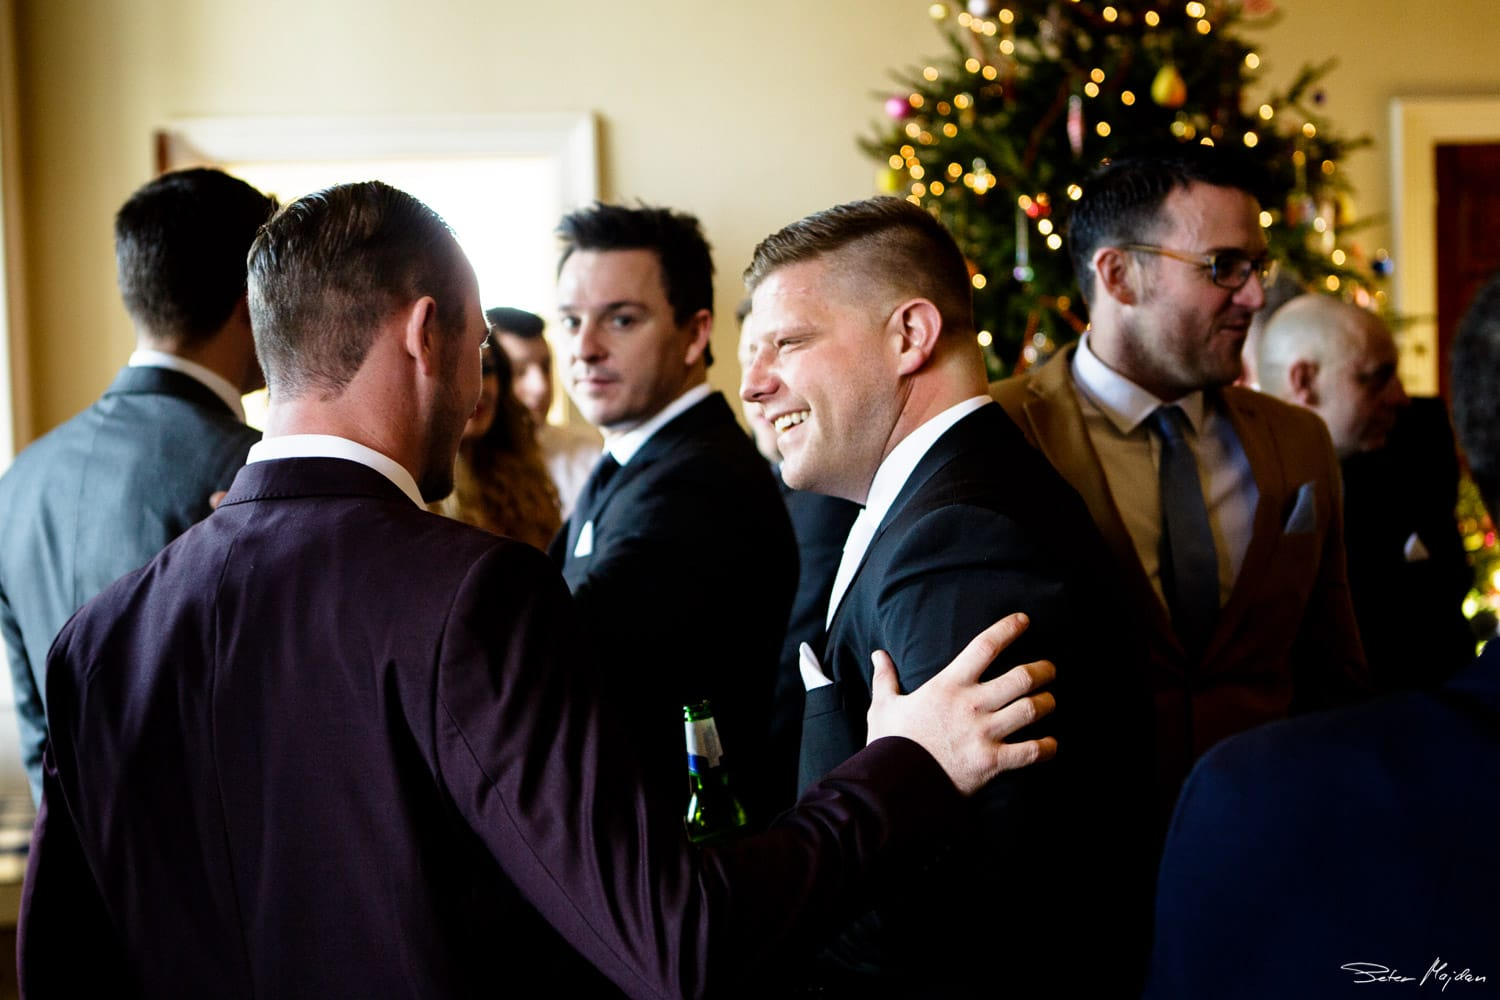 groom talking with guests